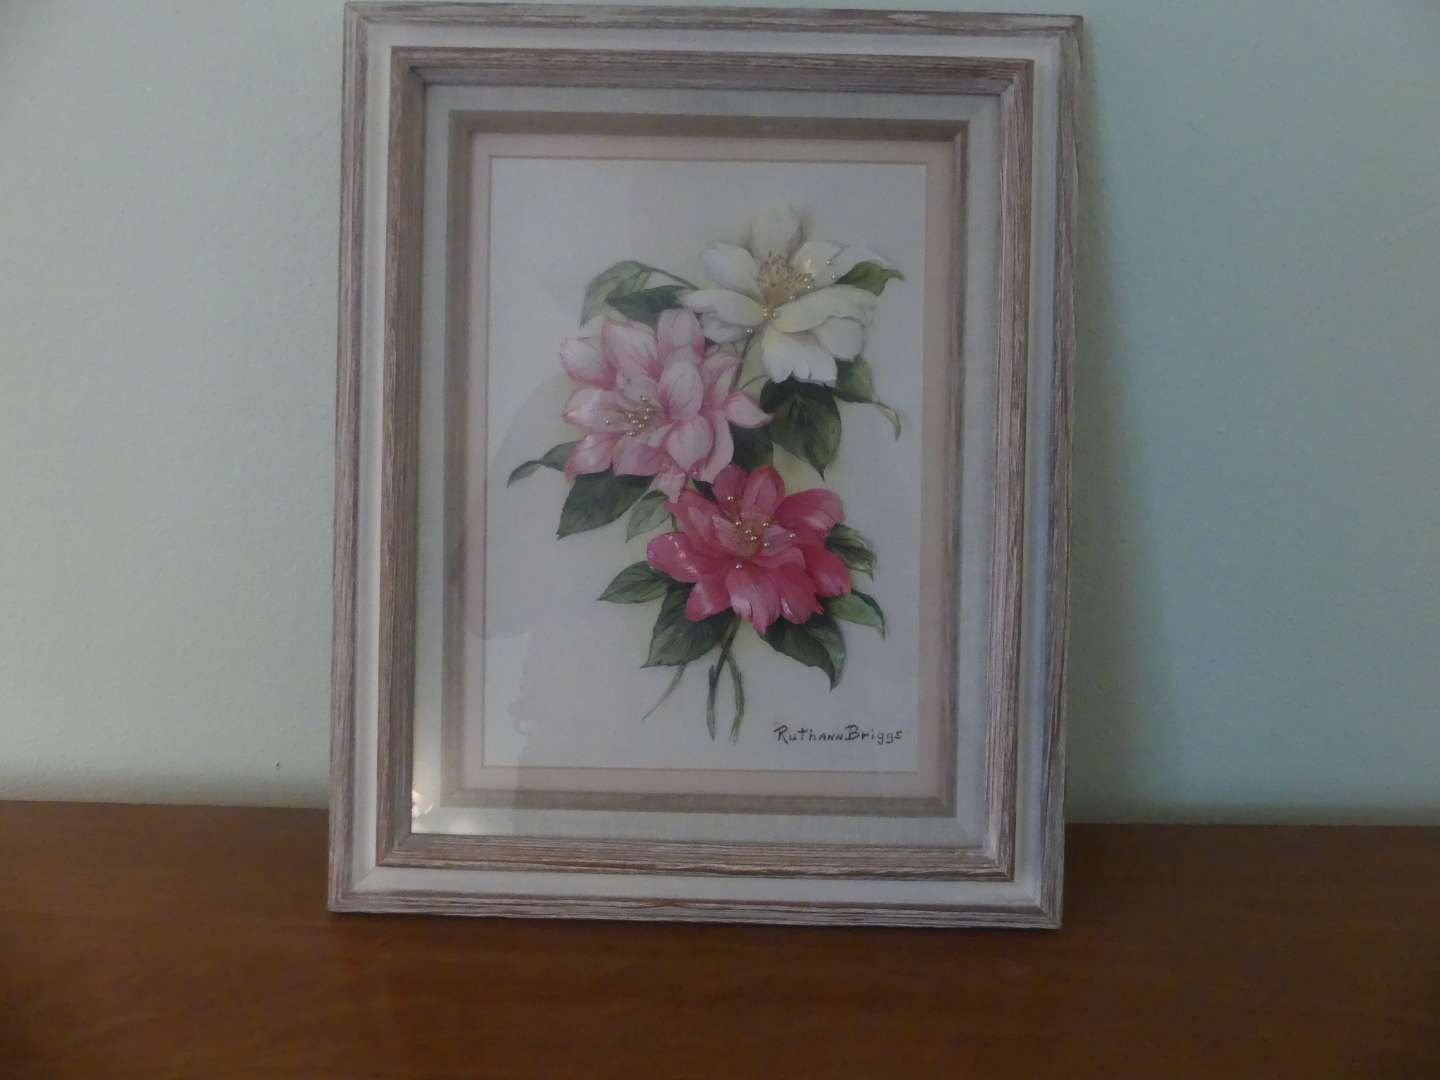 Lot #94 Signed/Framed Molded Plastic Decorated 3D Wall Art by Ruthann Briggs